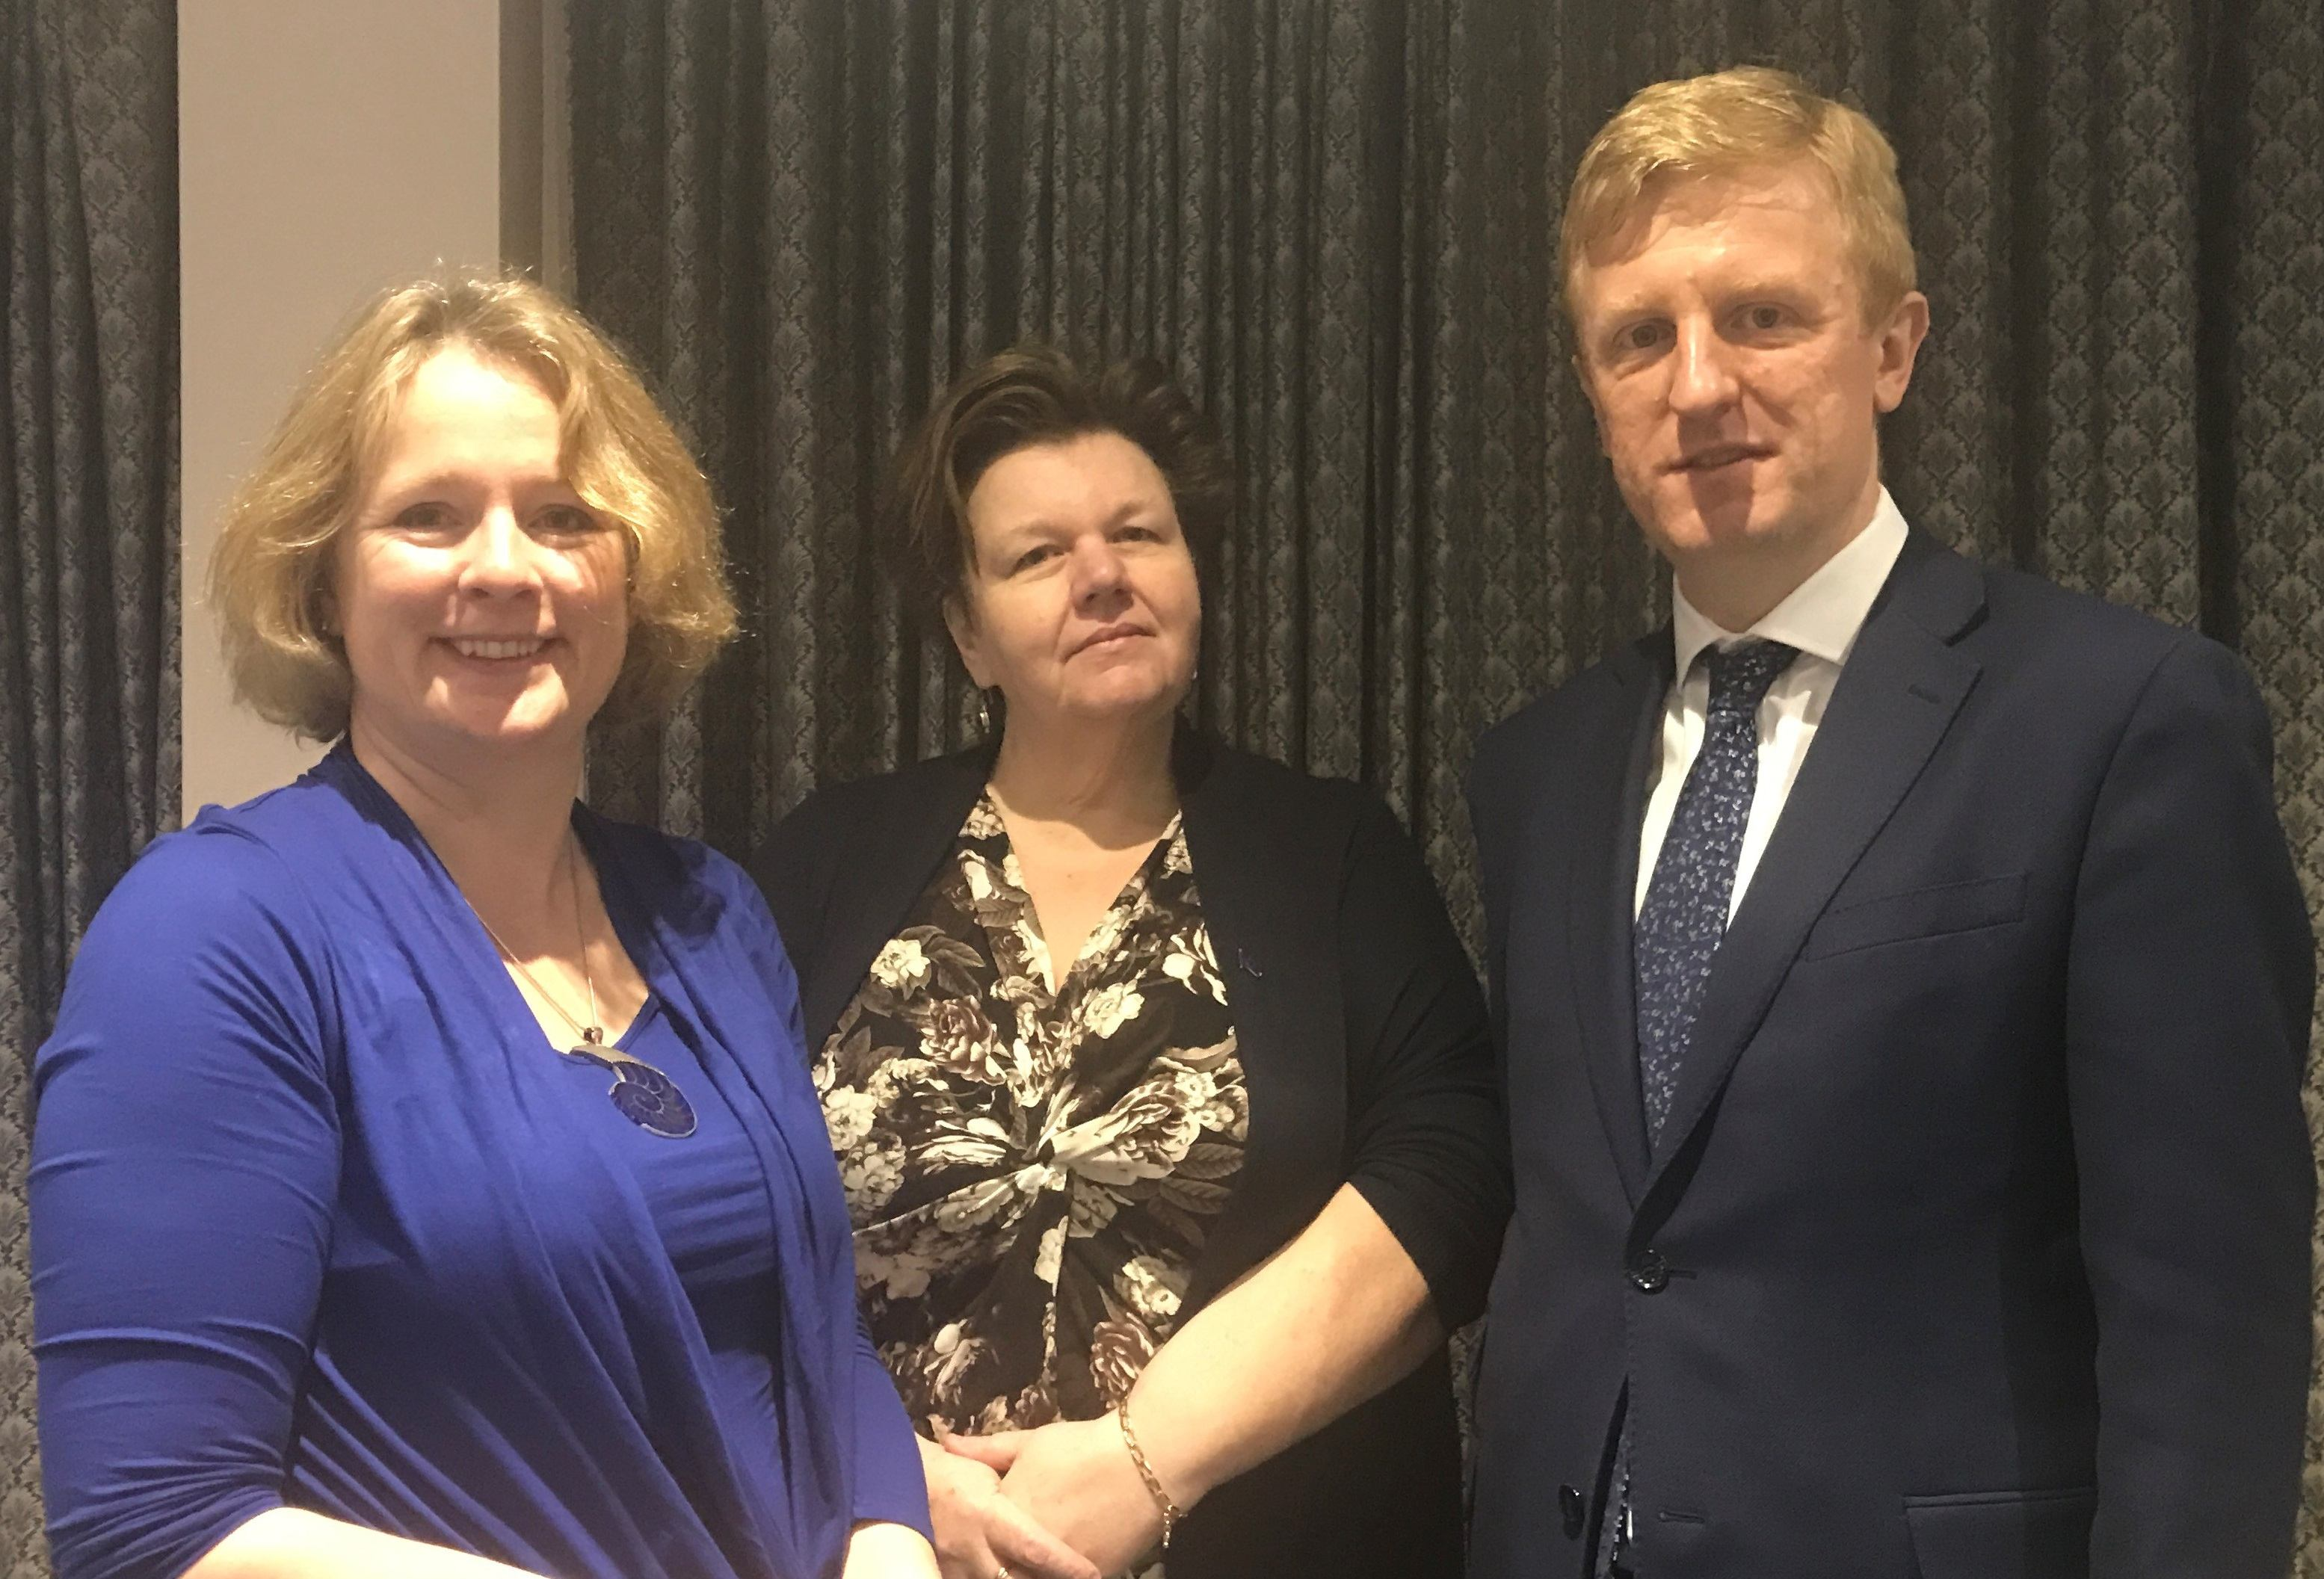 oliver and local mep meet to reassure residents over brexit and eu oliver and local mep meet to reassure residents over brexit and eu nationals oliver dowden